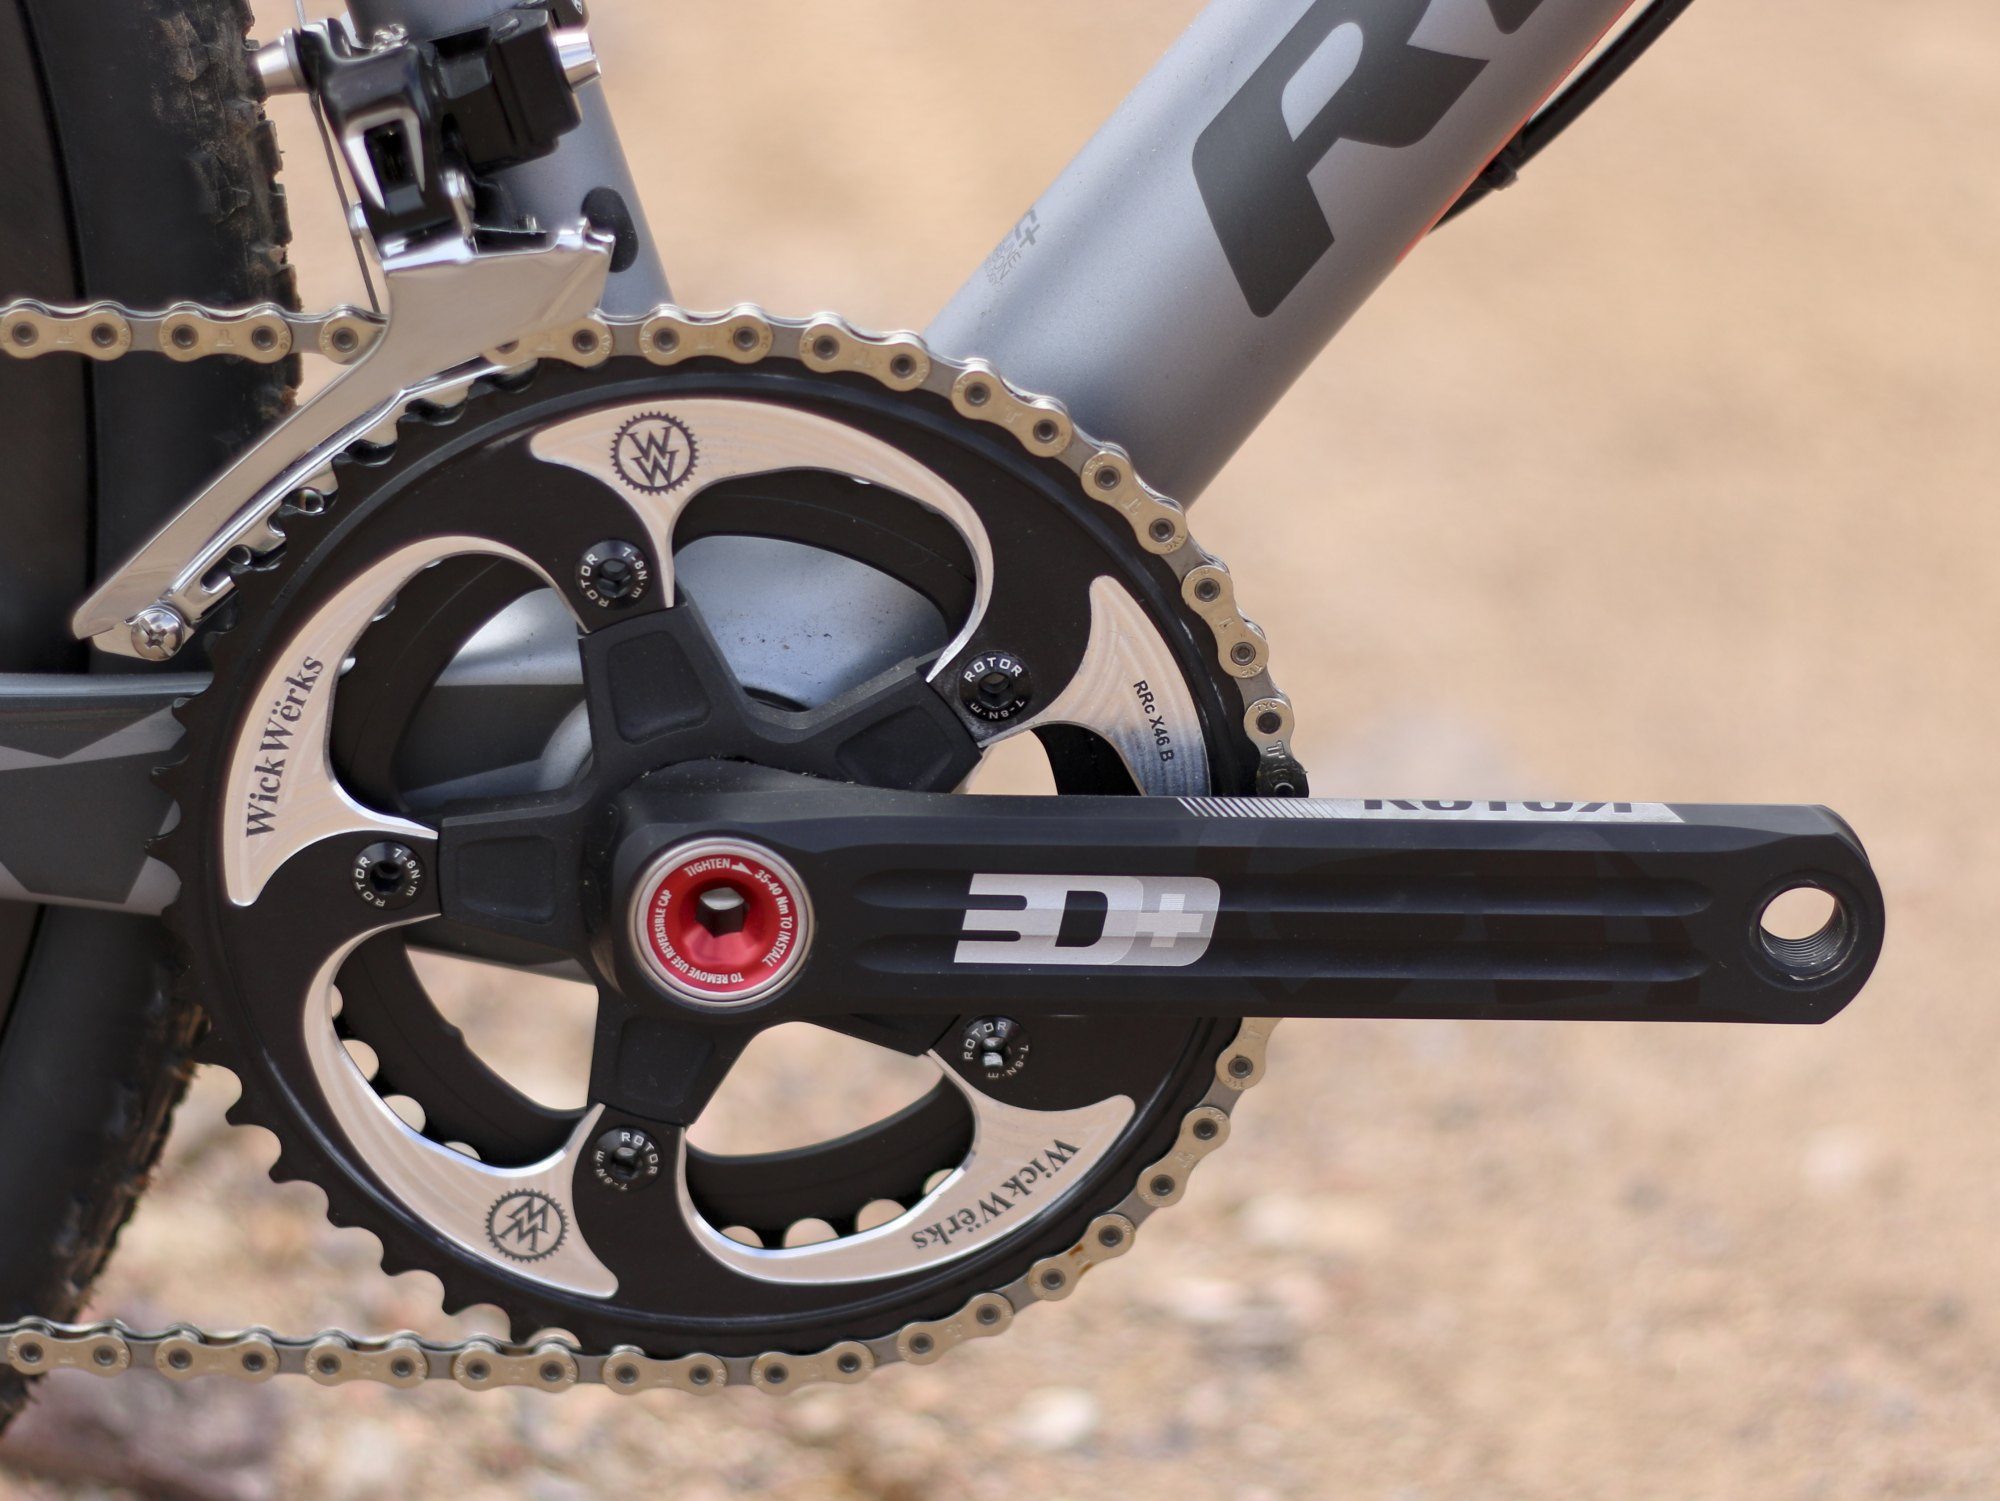 wick-werks-chainrings-provide-power-transfer-helps-the-microshift-front-derailleur-shift-quickly-cyclocross-magazine